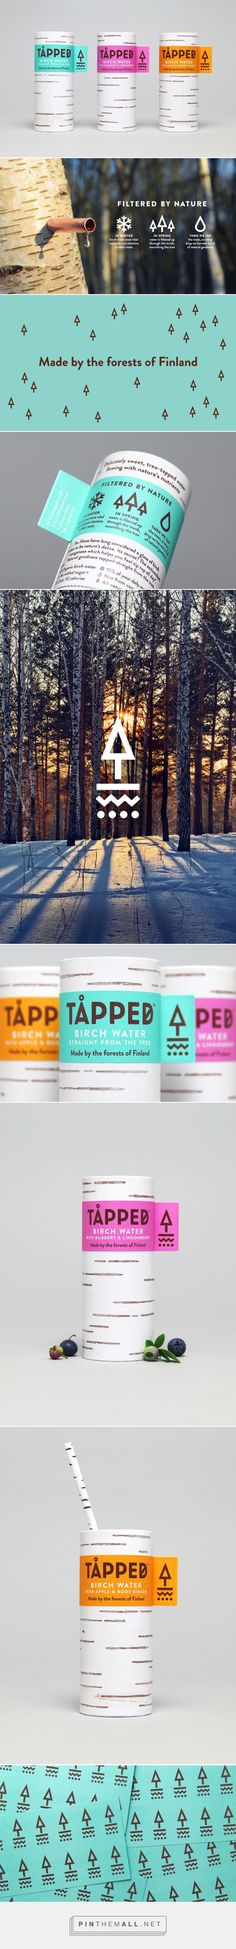 Tapped Birch Water by Horse via BP&O curated by Packaging Diva PD. Tapped…